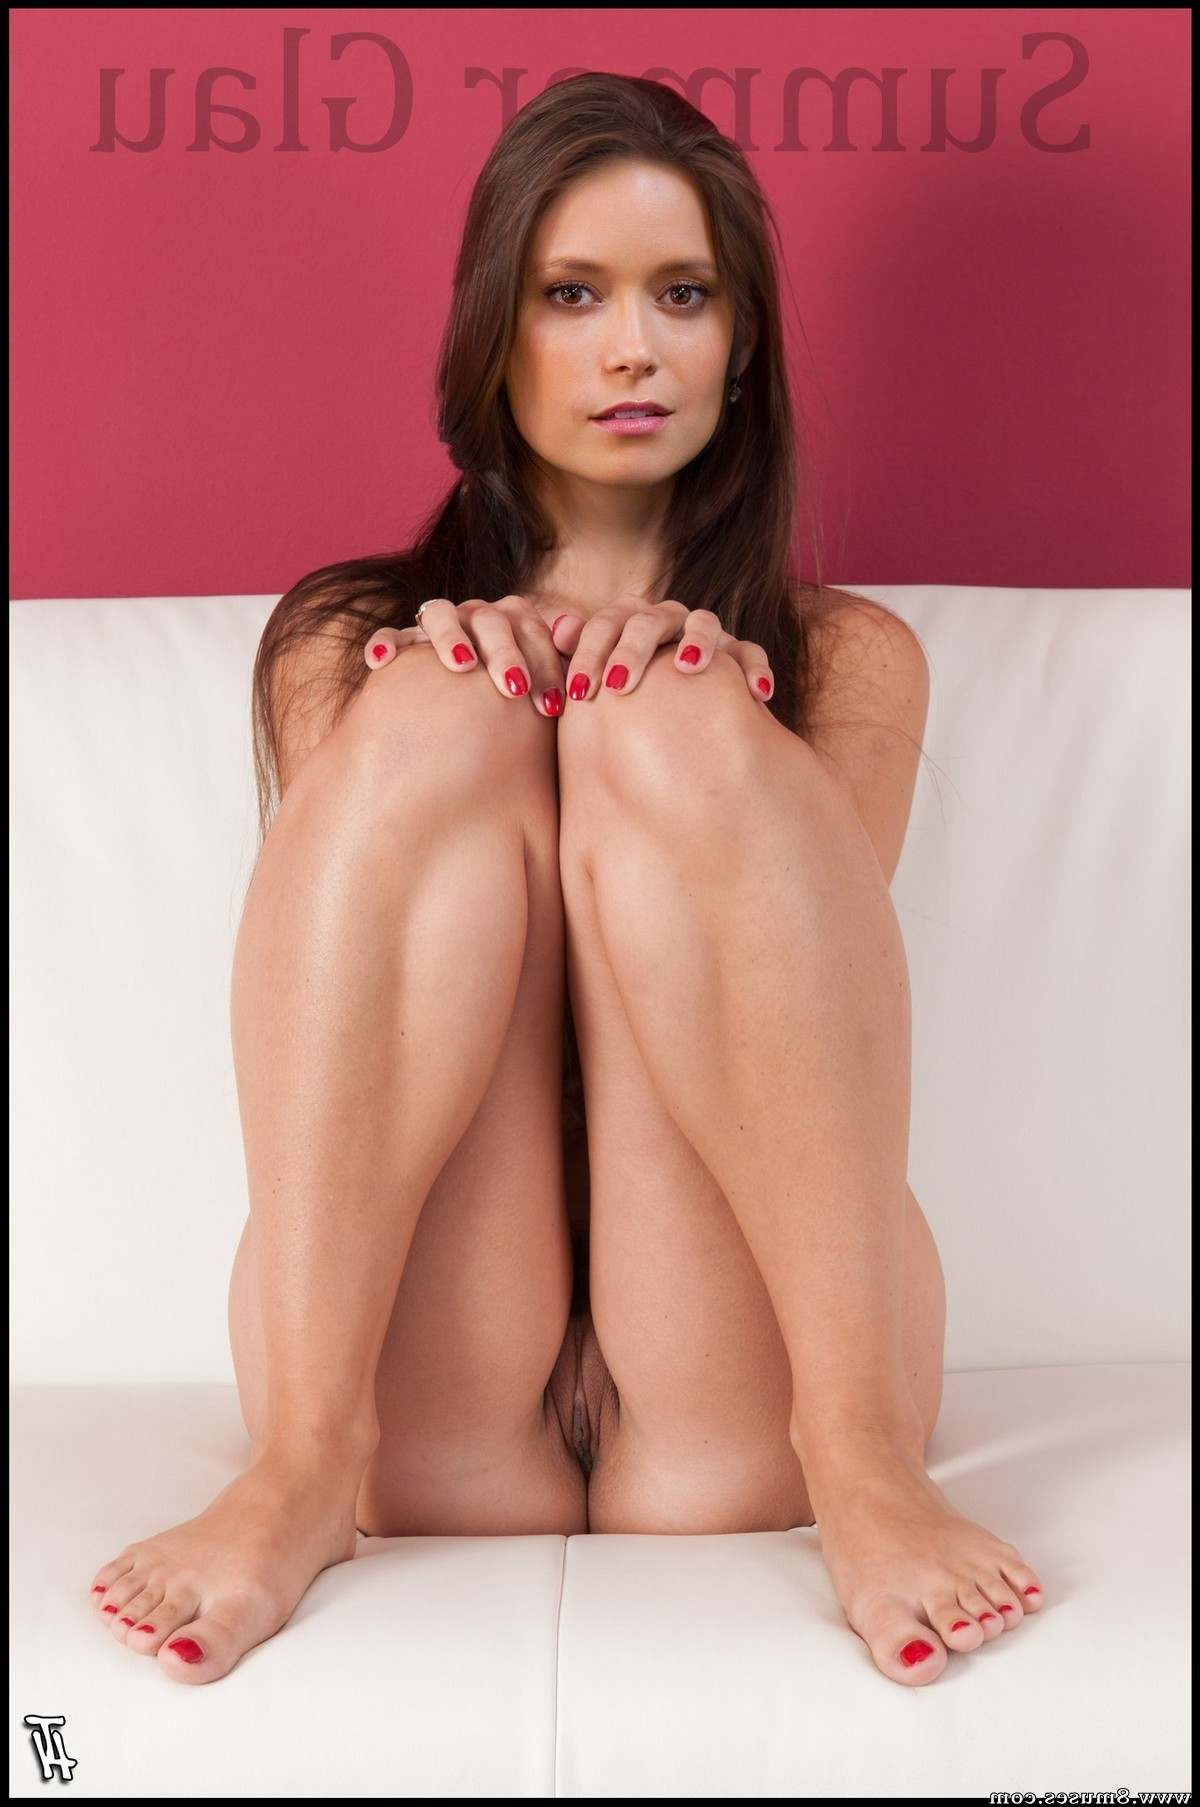 Fake-Celebrities-Sex-Pictures/Summer-Glau Summer_Glau__8muses_-_Sex_and_Porn_Comics_21.jpg